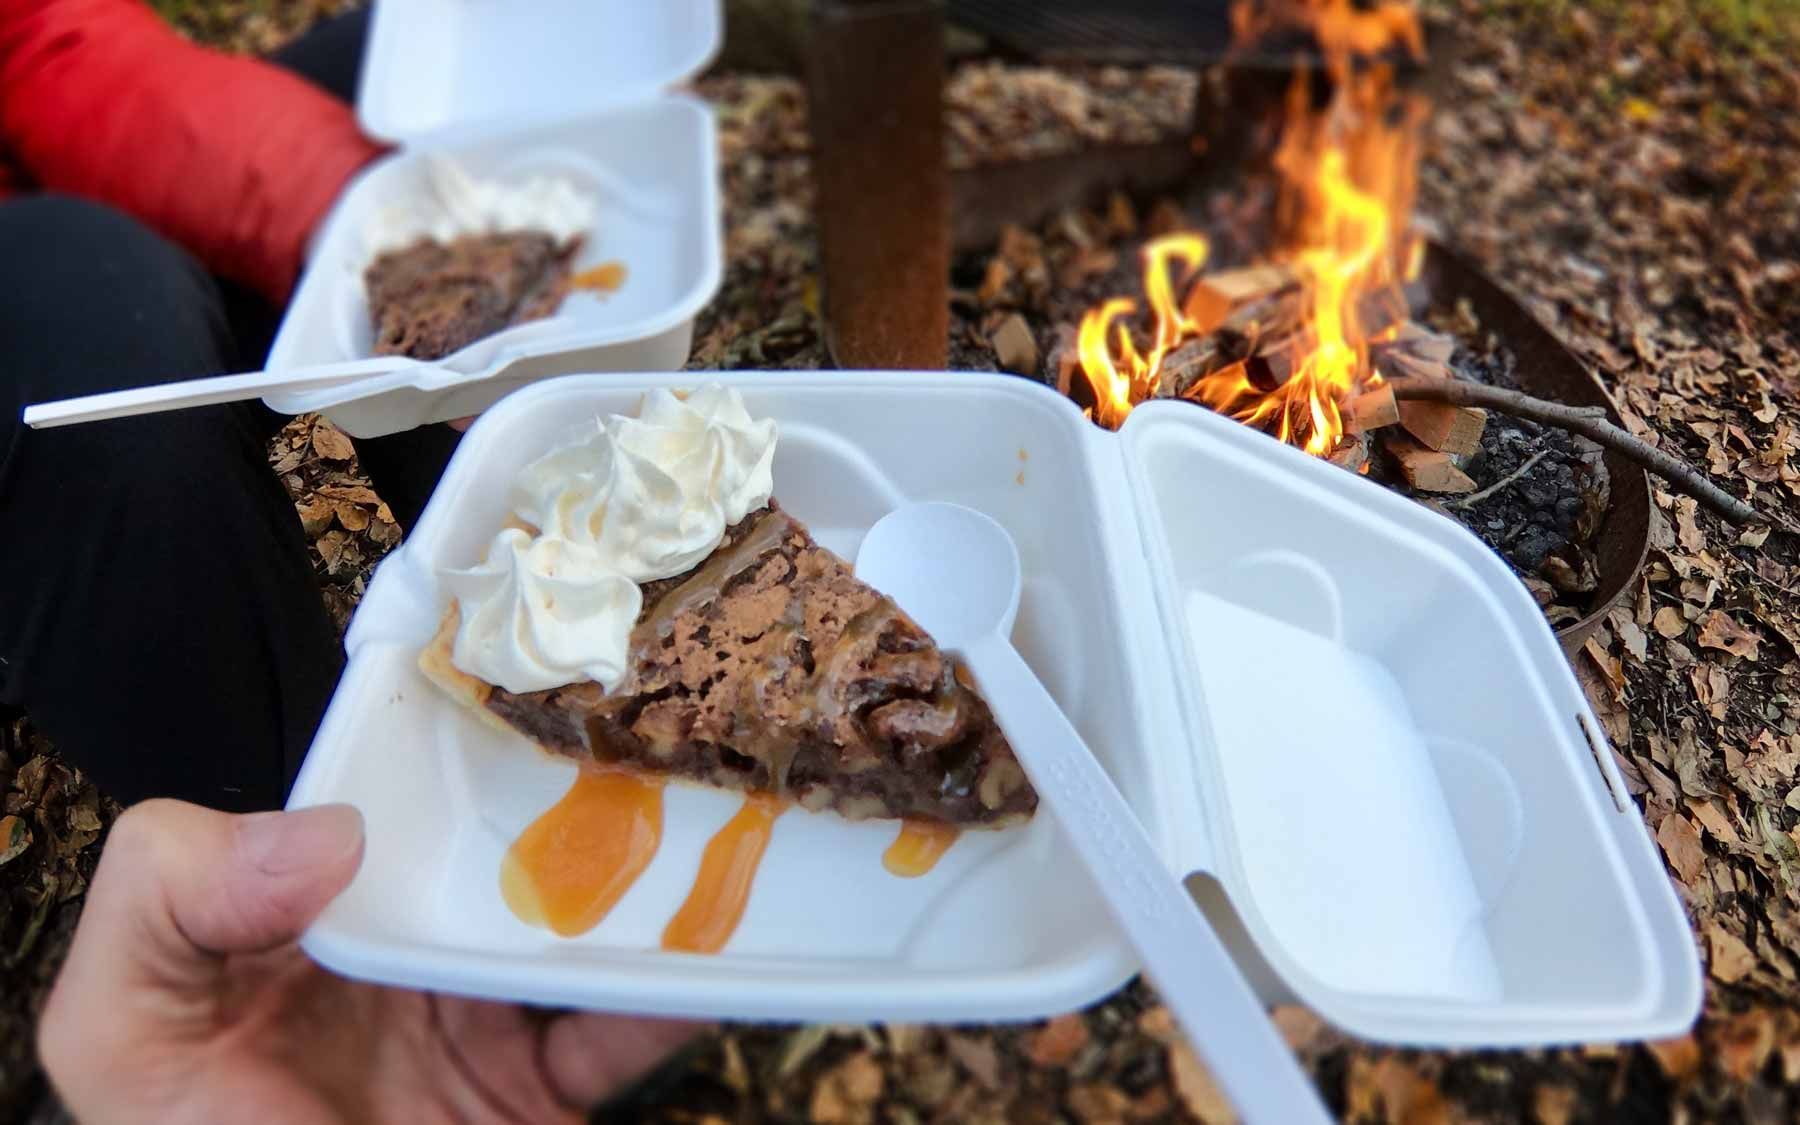 Bourbon-cream chocolate chess pie from Peaks of Otter Lodge, off Blue Ridge Parkway, Virginia